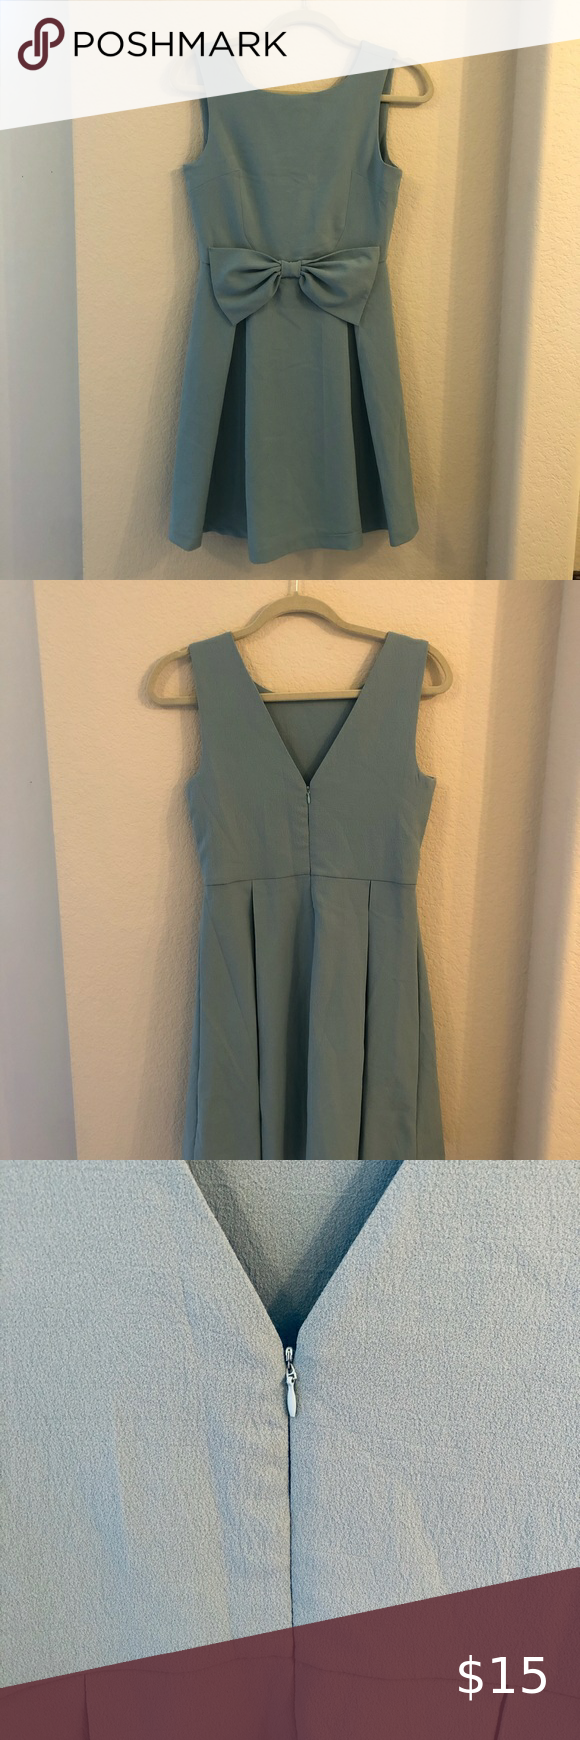 Photo of Modcloth Dress Size M / worn once for a photo shoot. beautiful robin's egg blu…